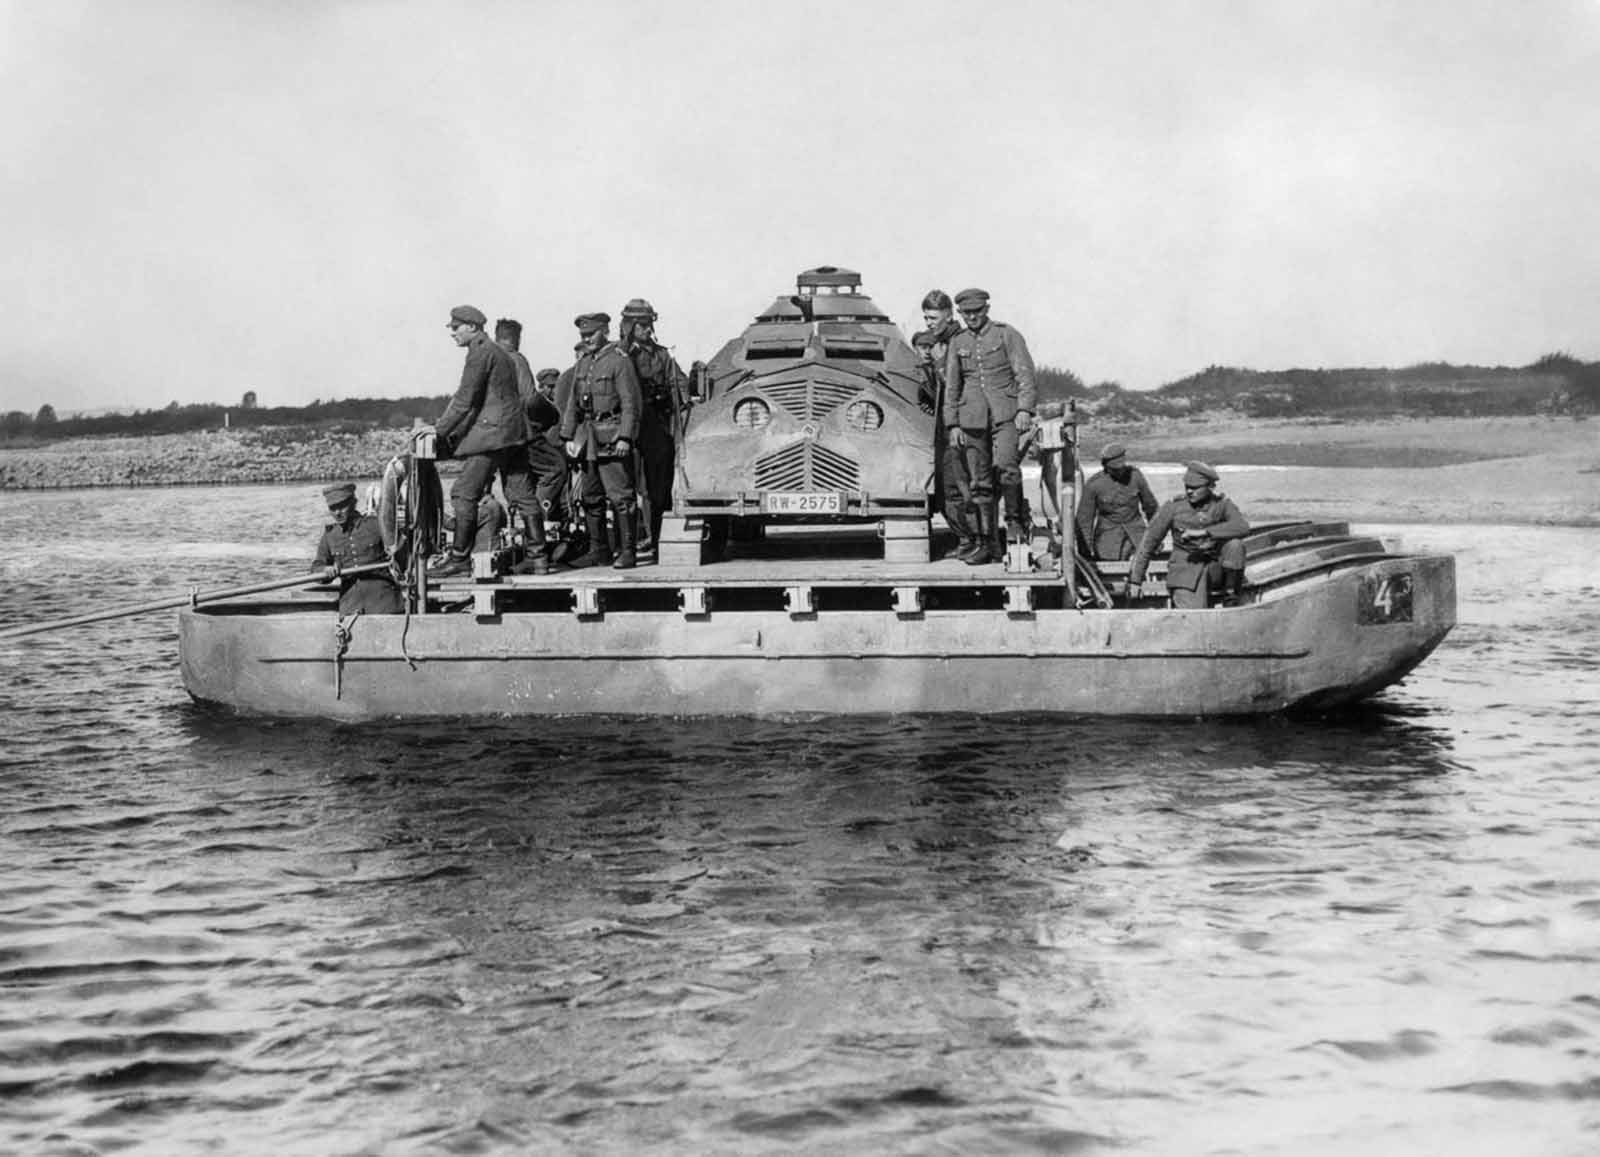 German troops ferry a dummy tank across the river Oder during military exercises. 1932.